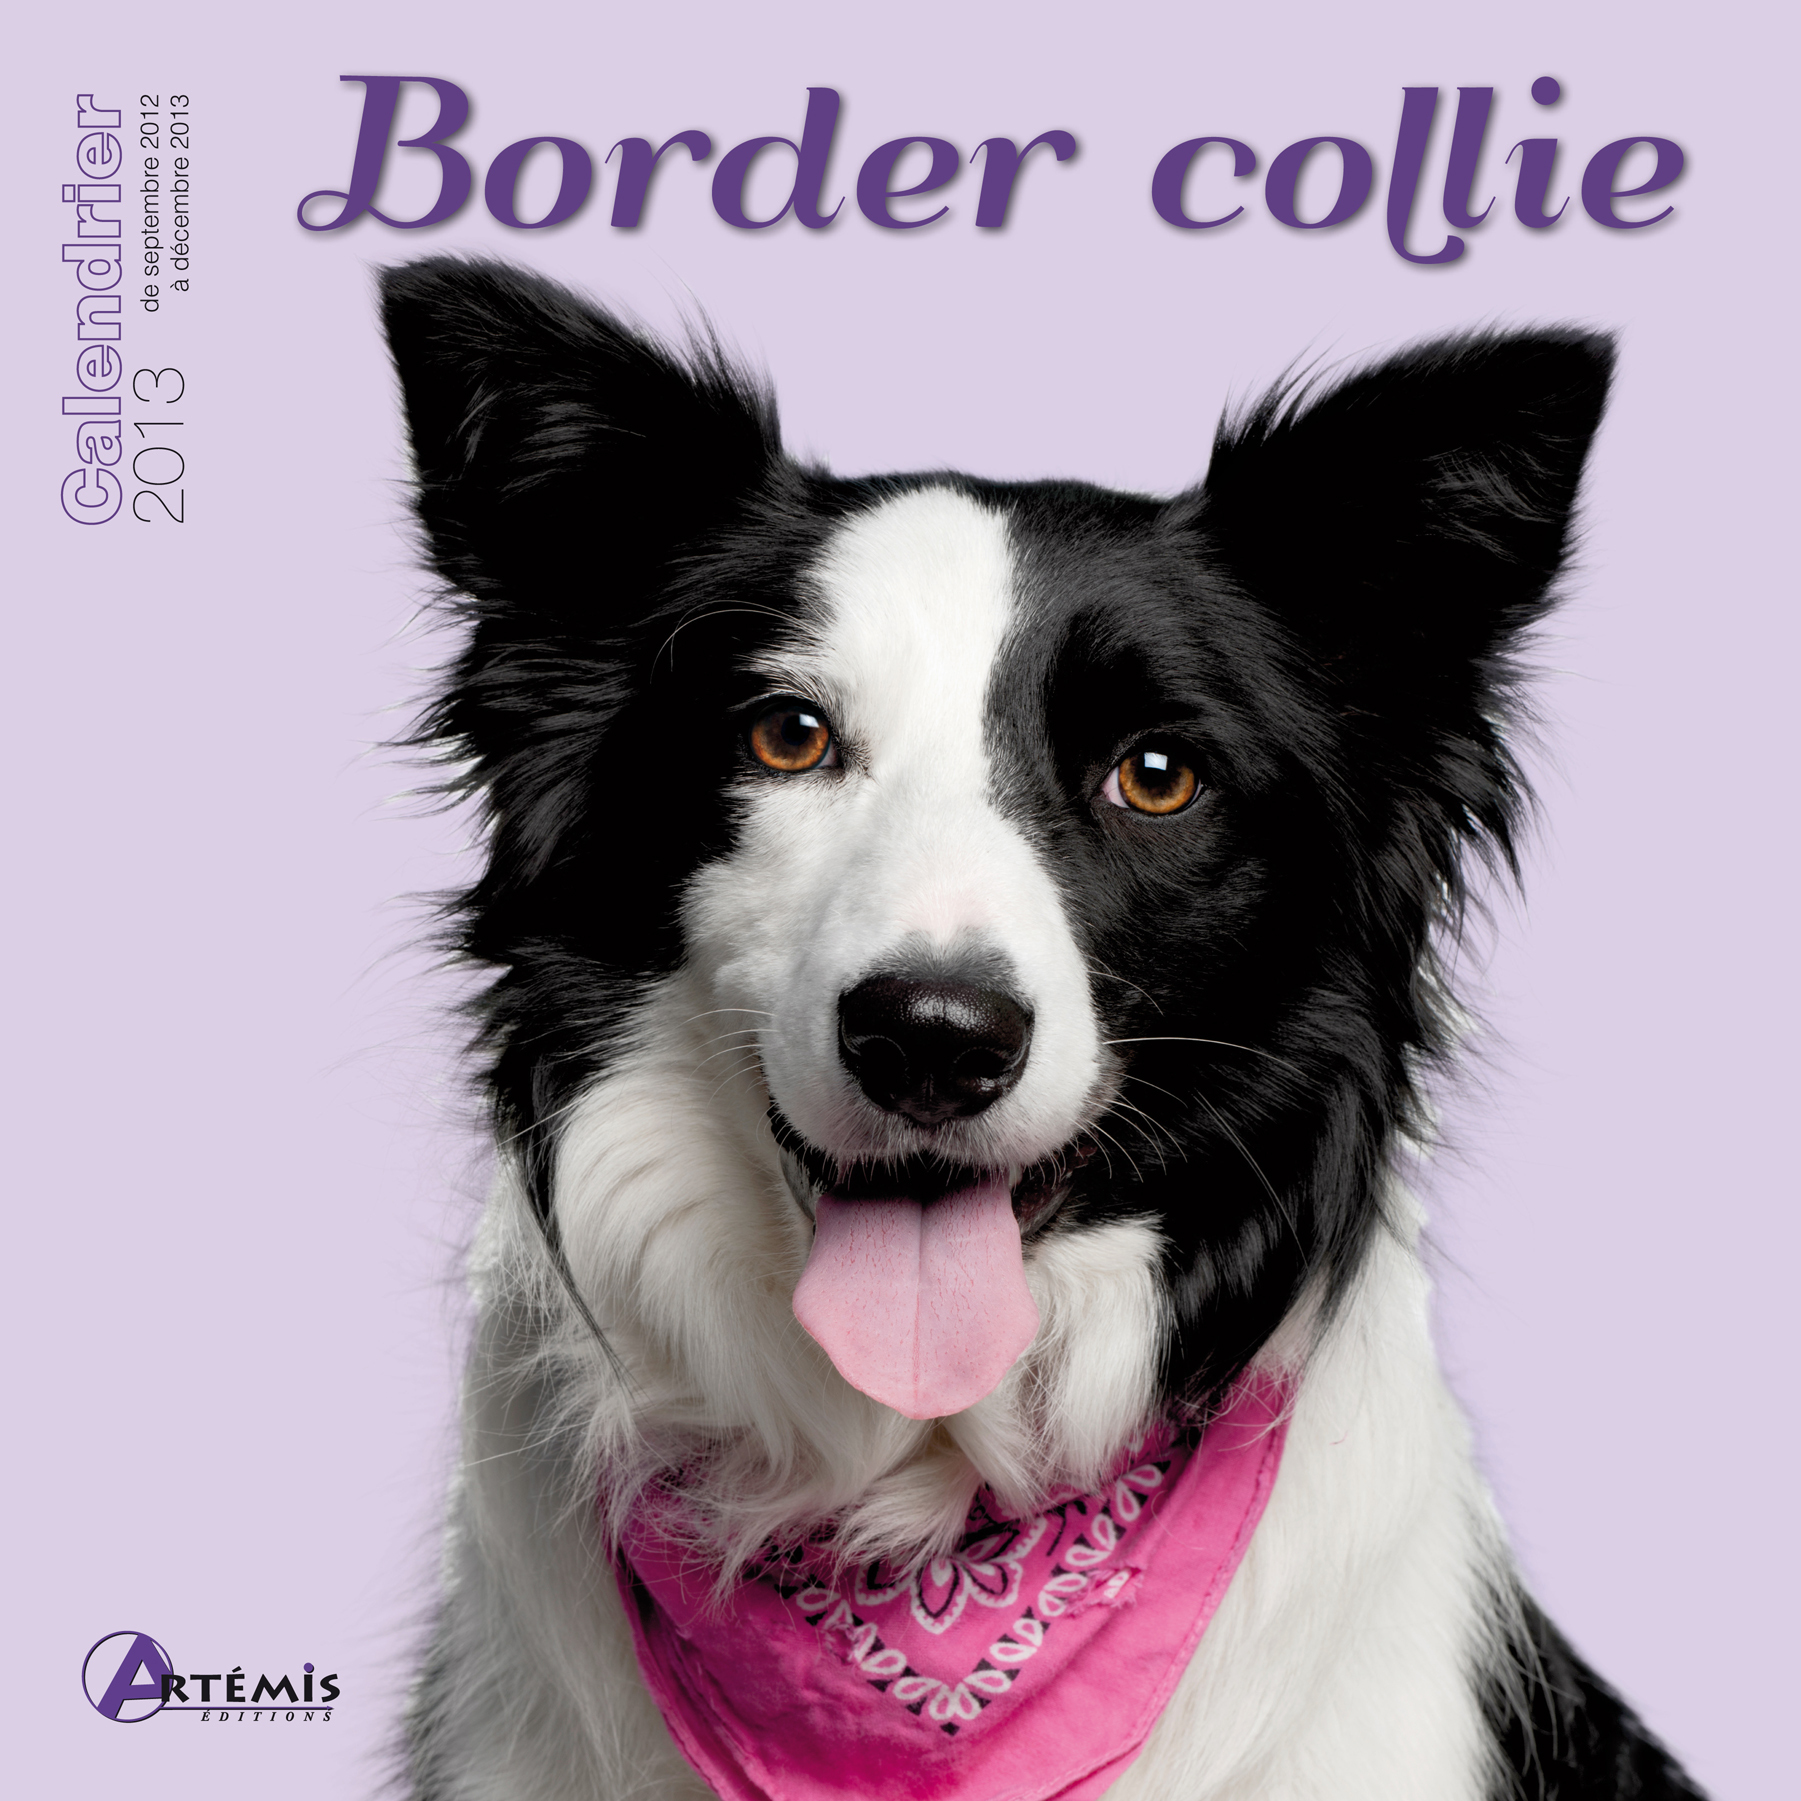 **BORDER COLLIE (2013)